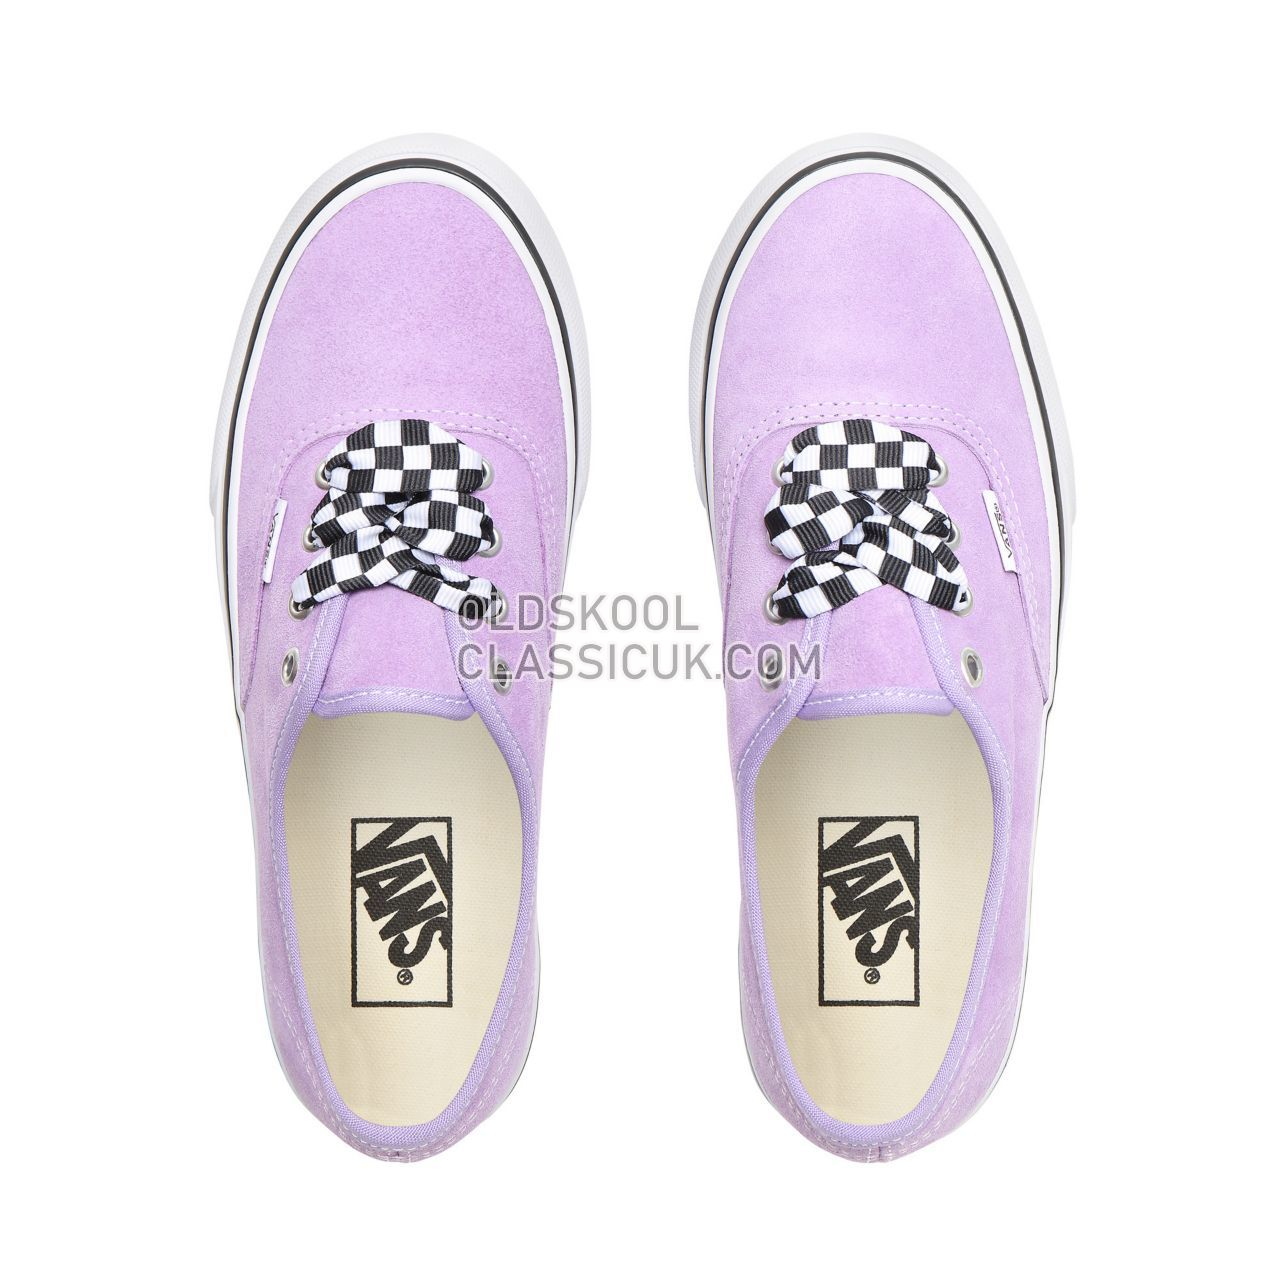 547587d4c6 Vans Checkerboard Lace Authentic Platform 2.0 Sneakers Womens (Checkerboard  Lace) Violet Tulip True White VN0A3AV8S1V Shoes - £58